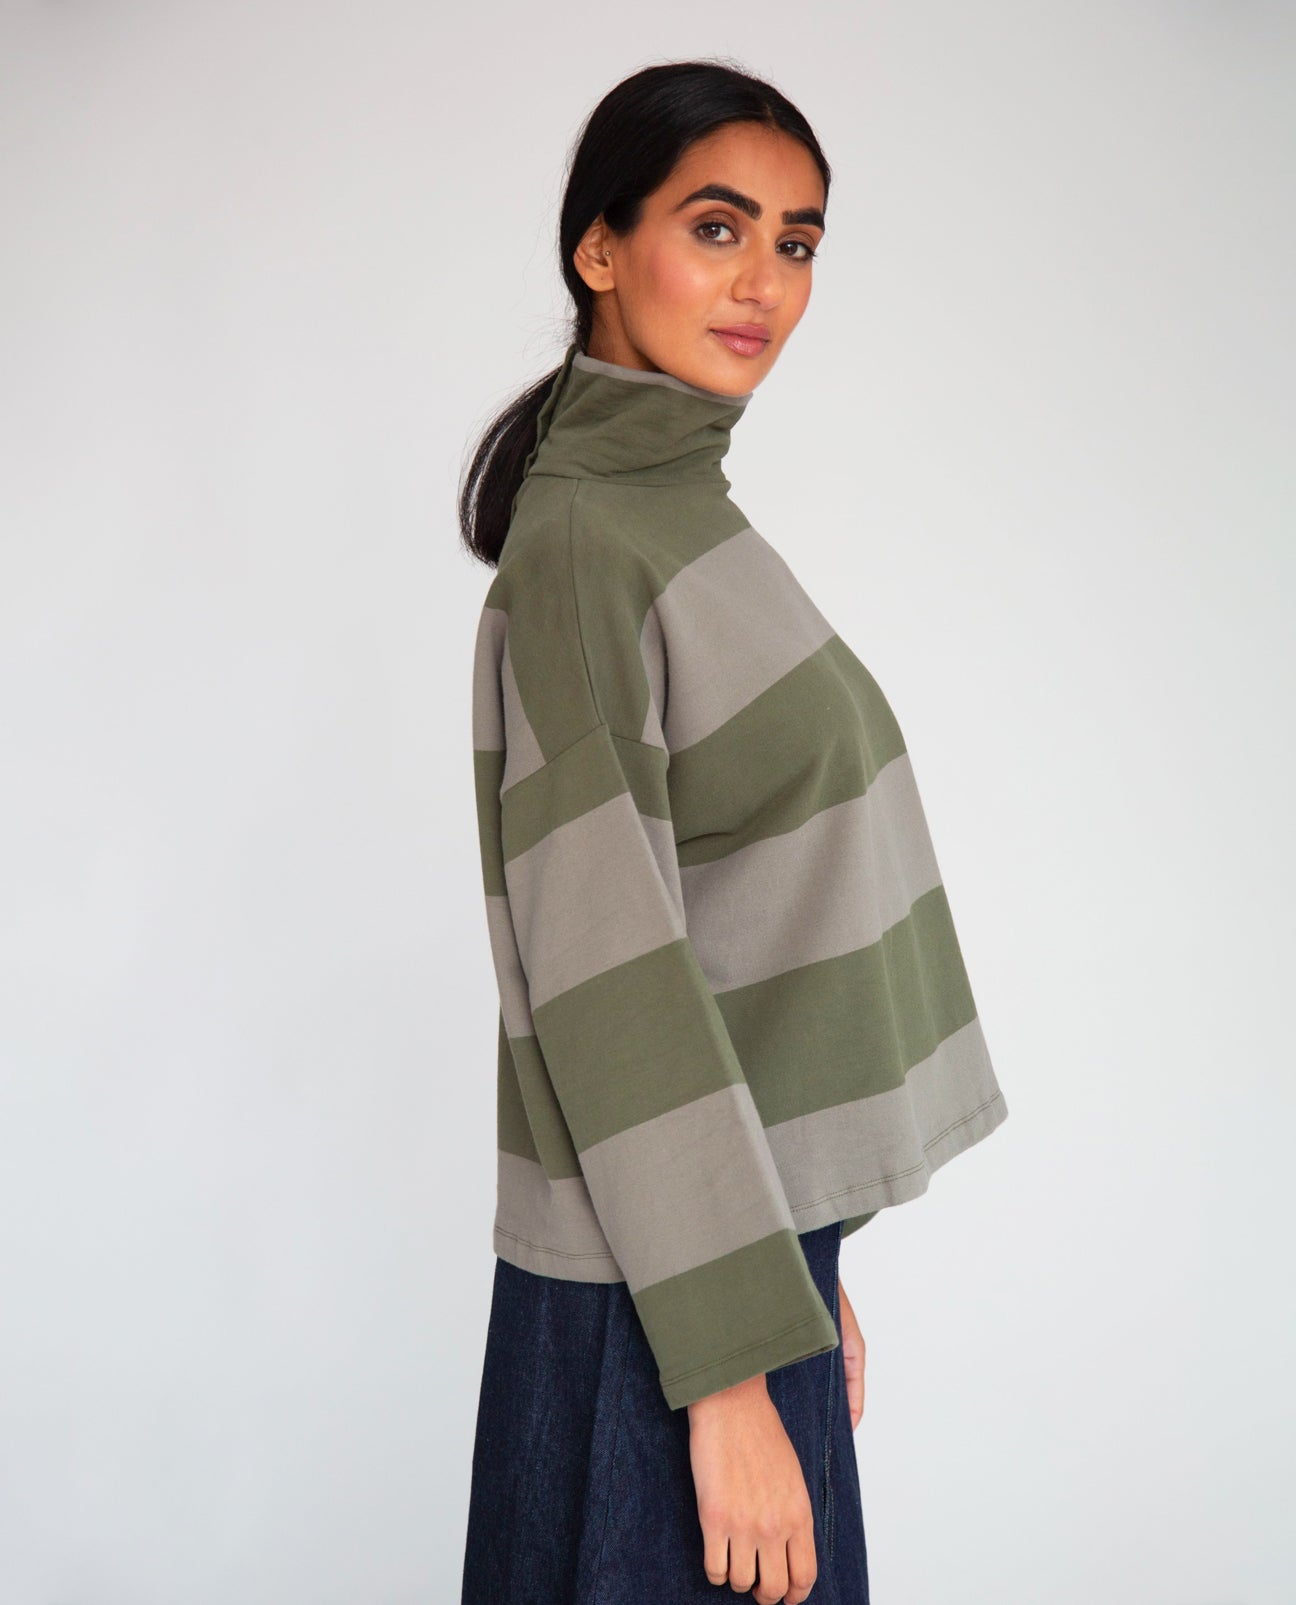 Ula-Sue Organic Cotton Top In Army & Khaki